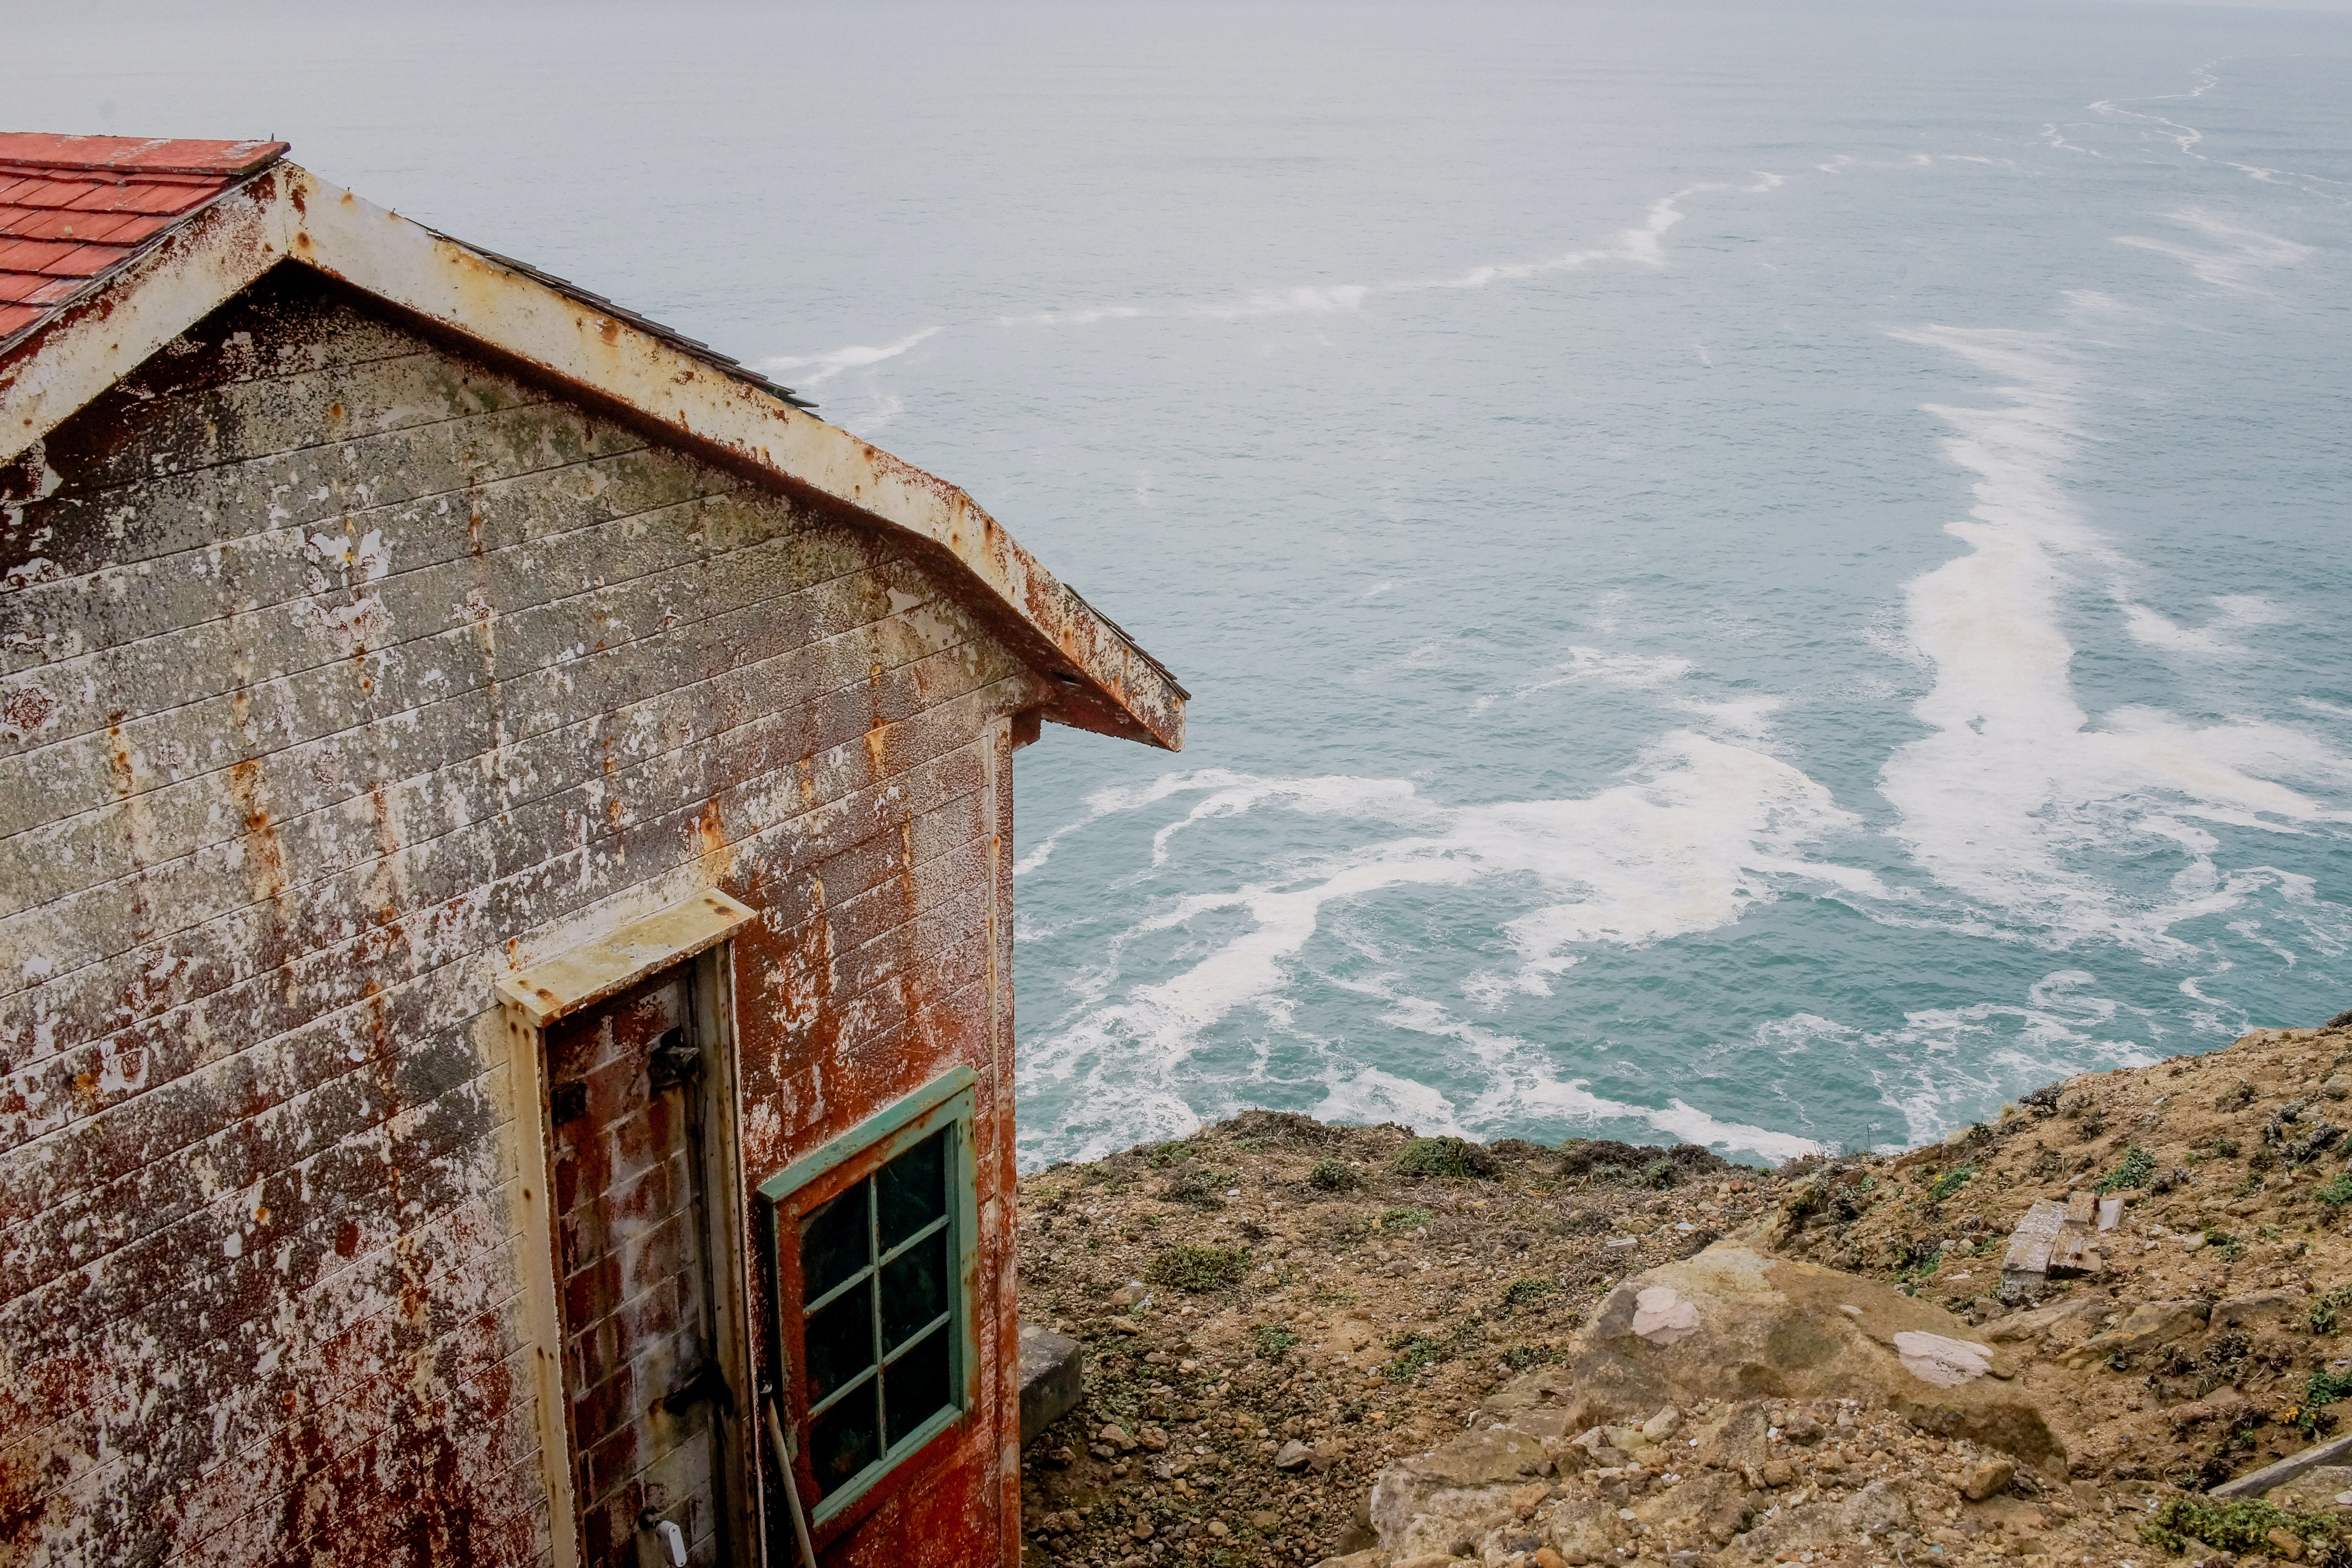 gray and red concrete house near the body of water